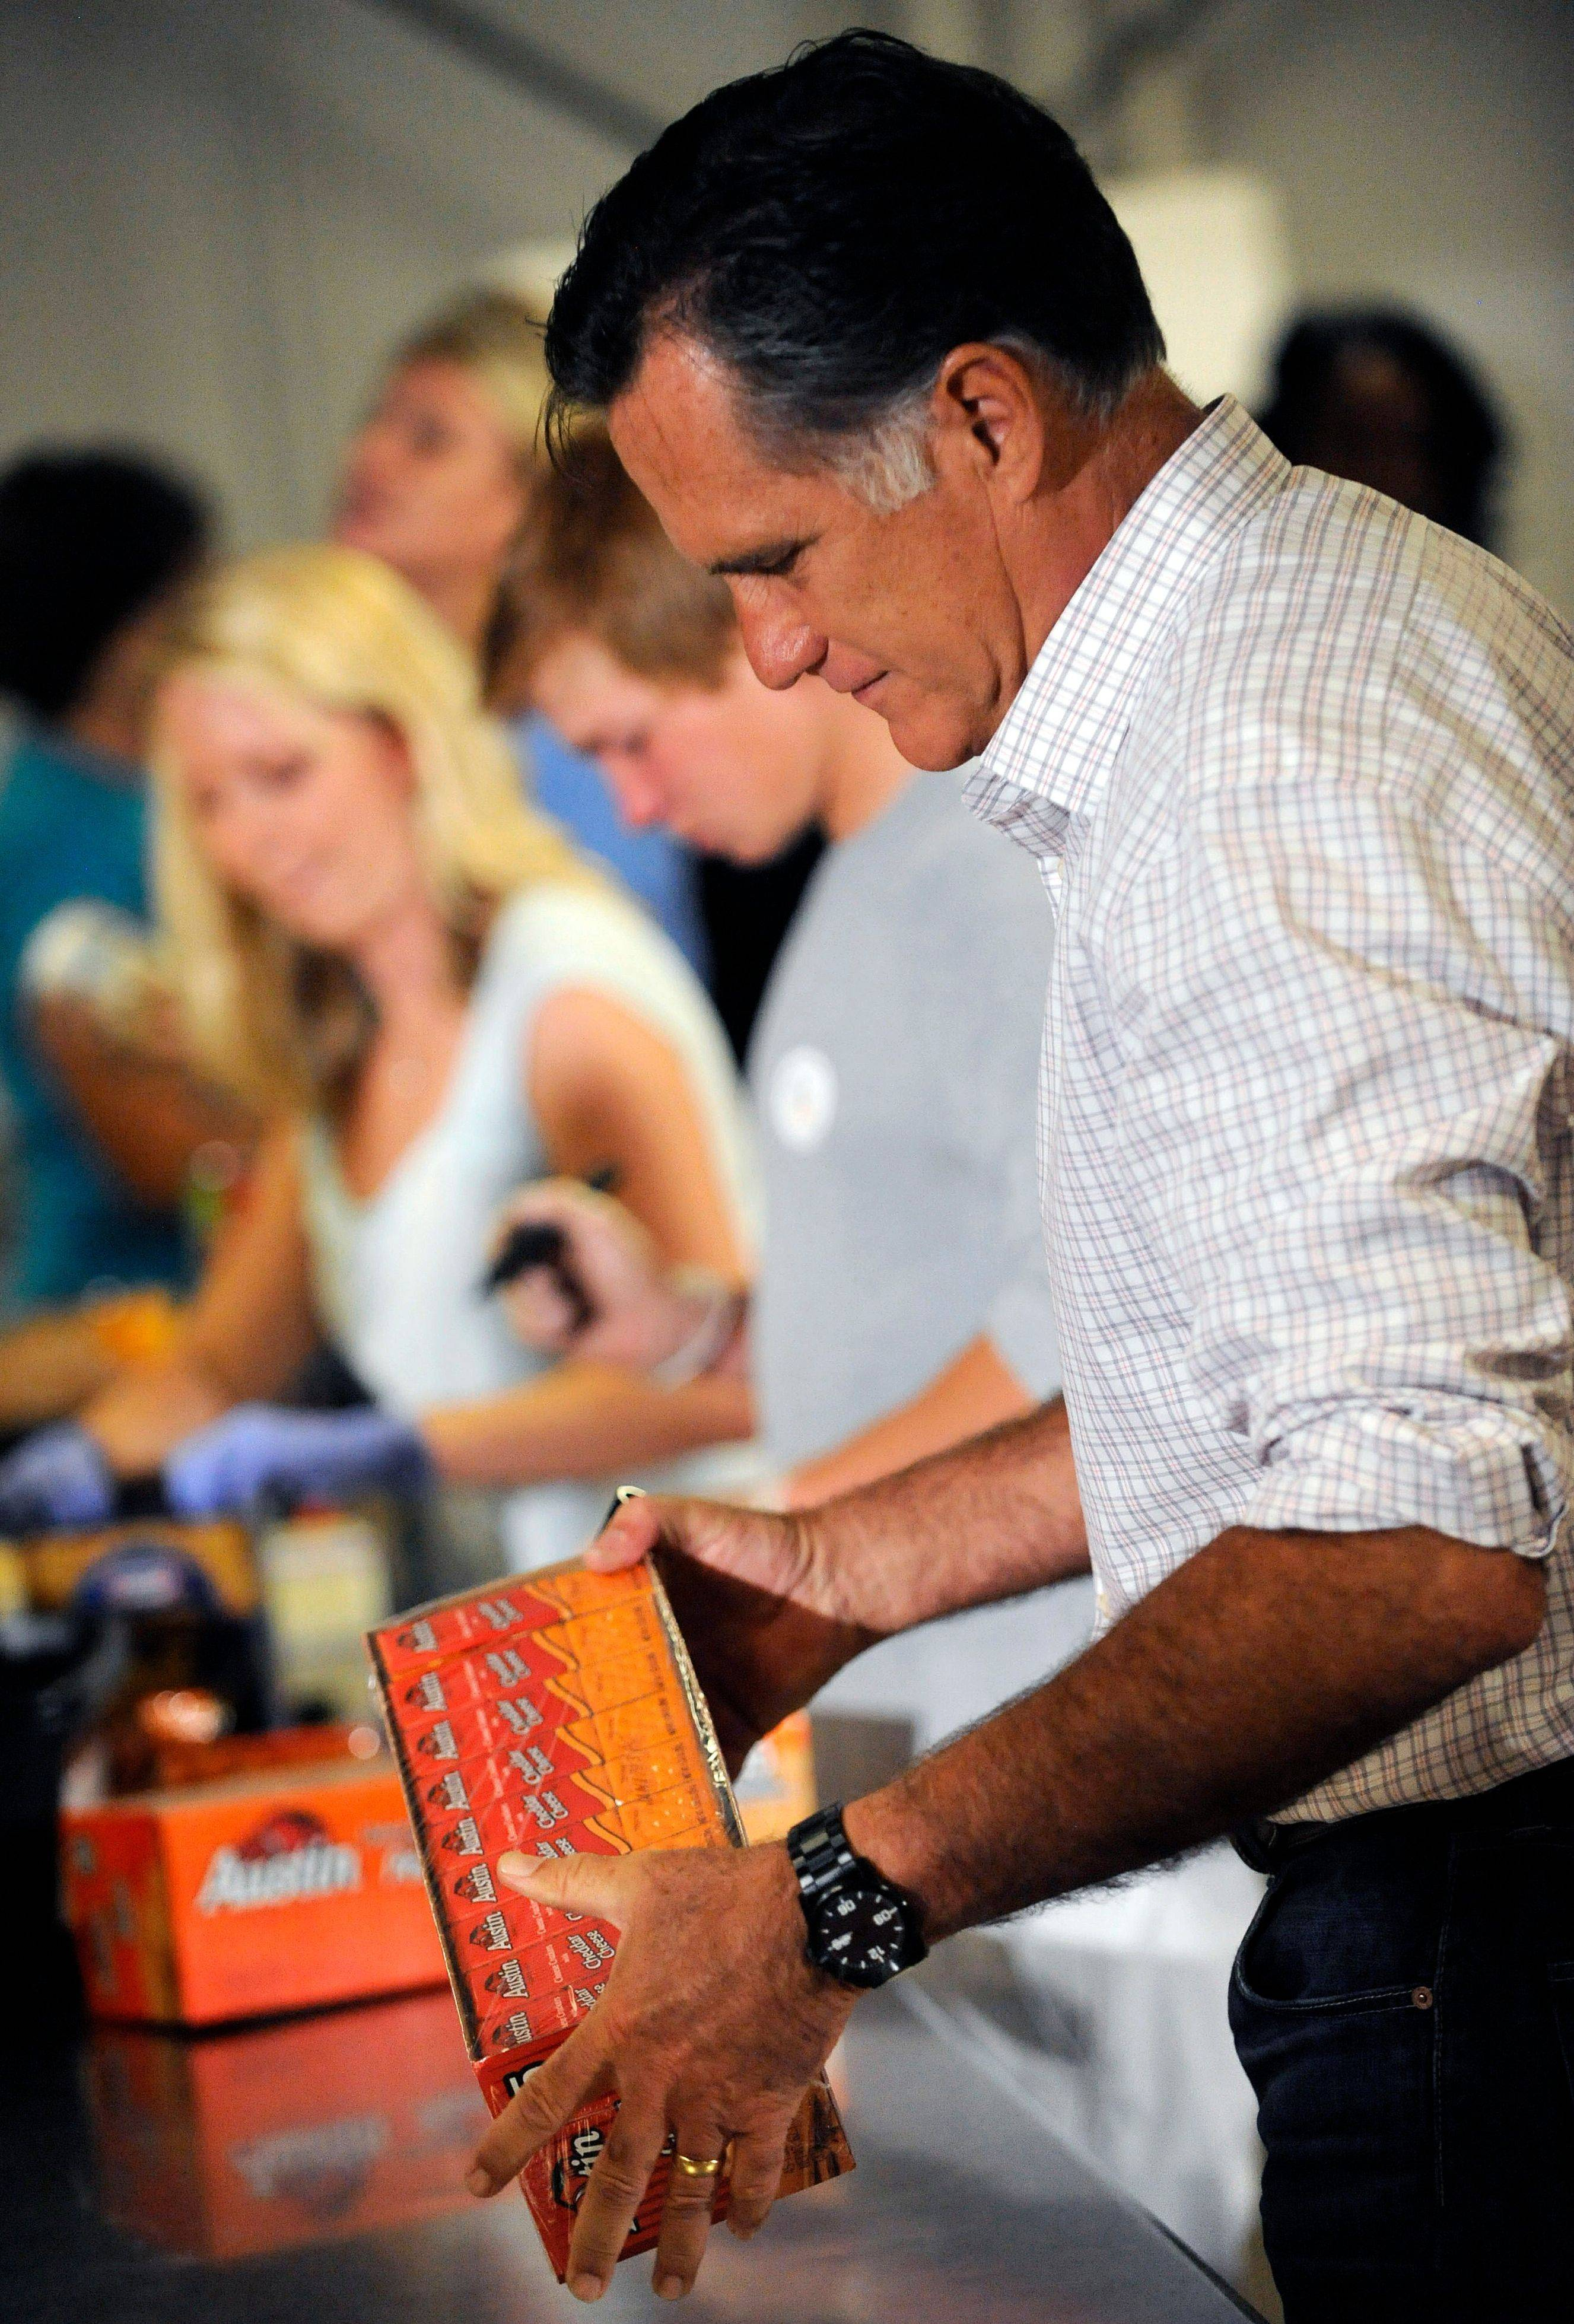 Republican presidential candidate Mitt Romney works alongside volunteers at Care and Share during his visit to Colorado Springs, Colo., on Tuesday. He helped box food for firefighters and people displaced by the fires that have plagued the state this summer.